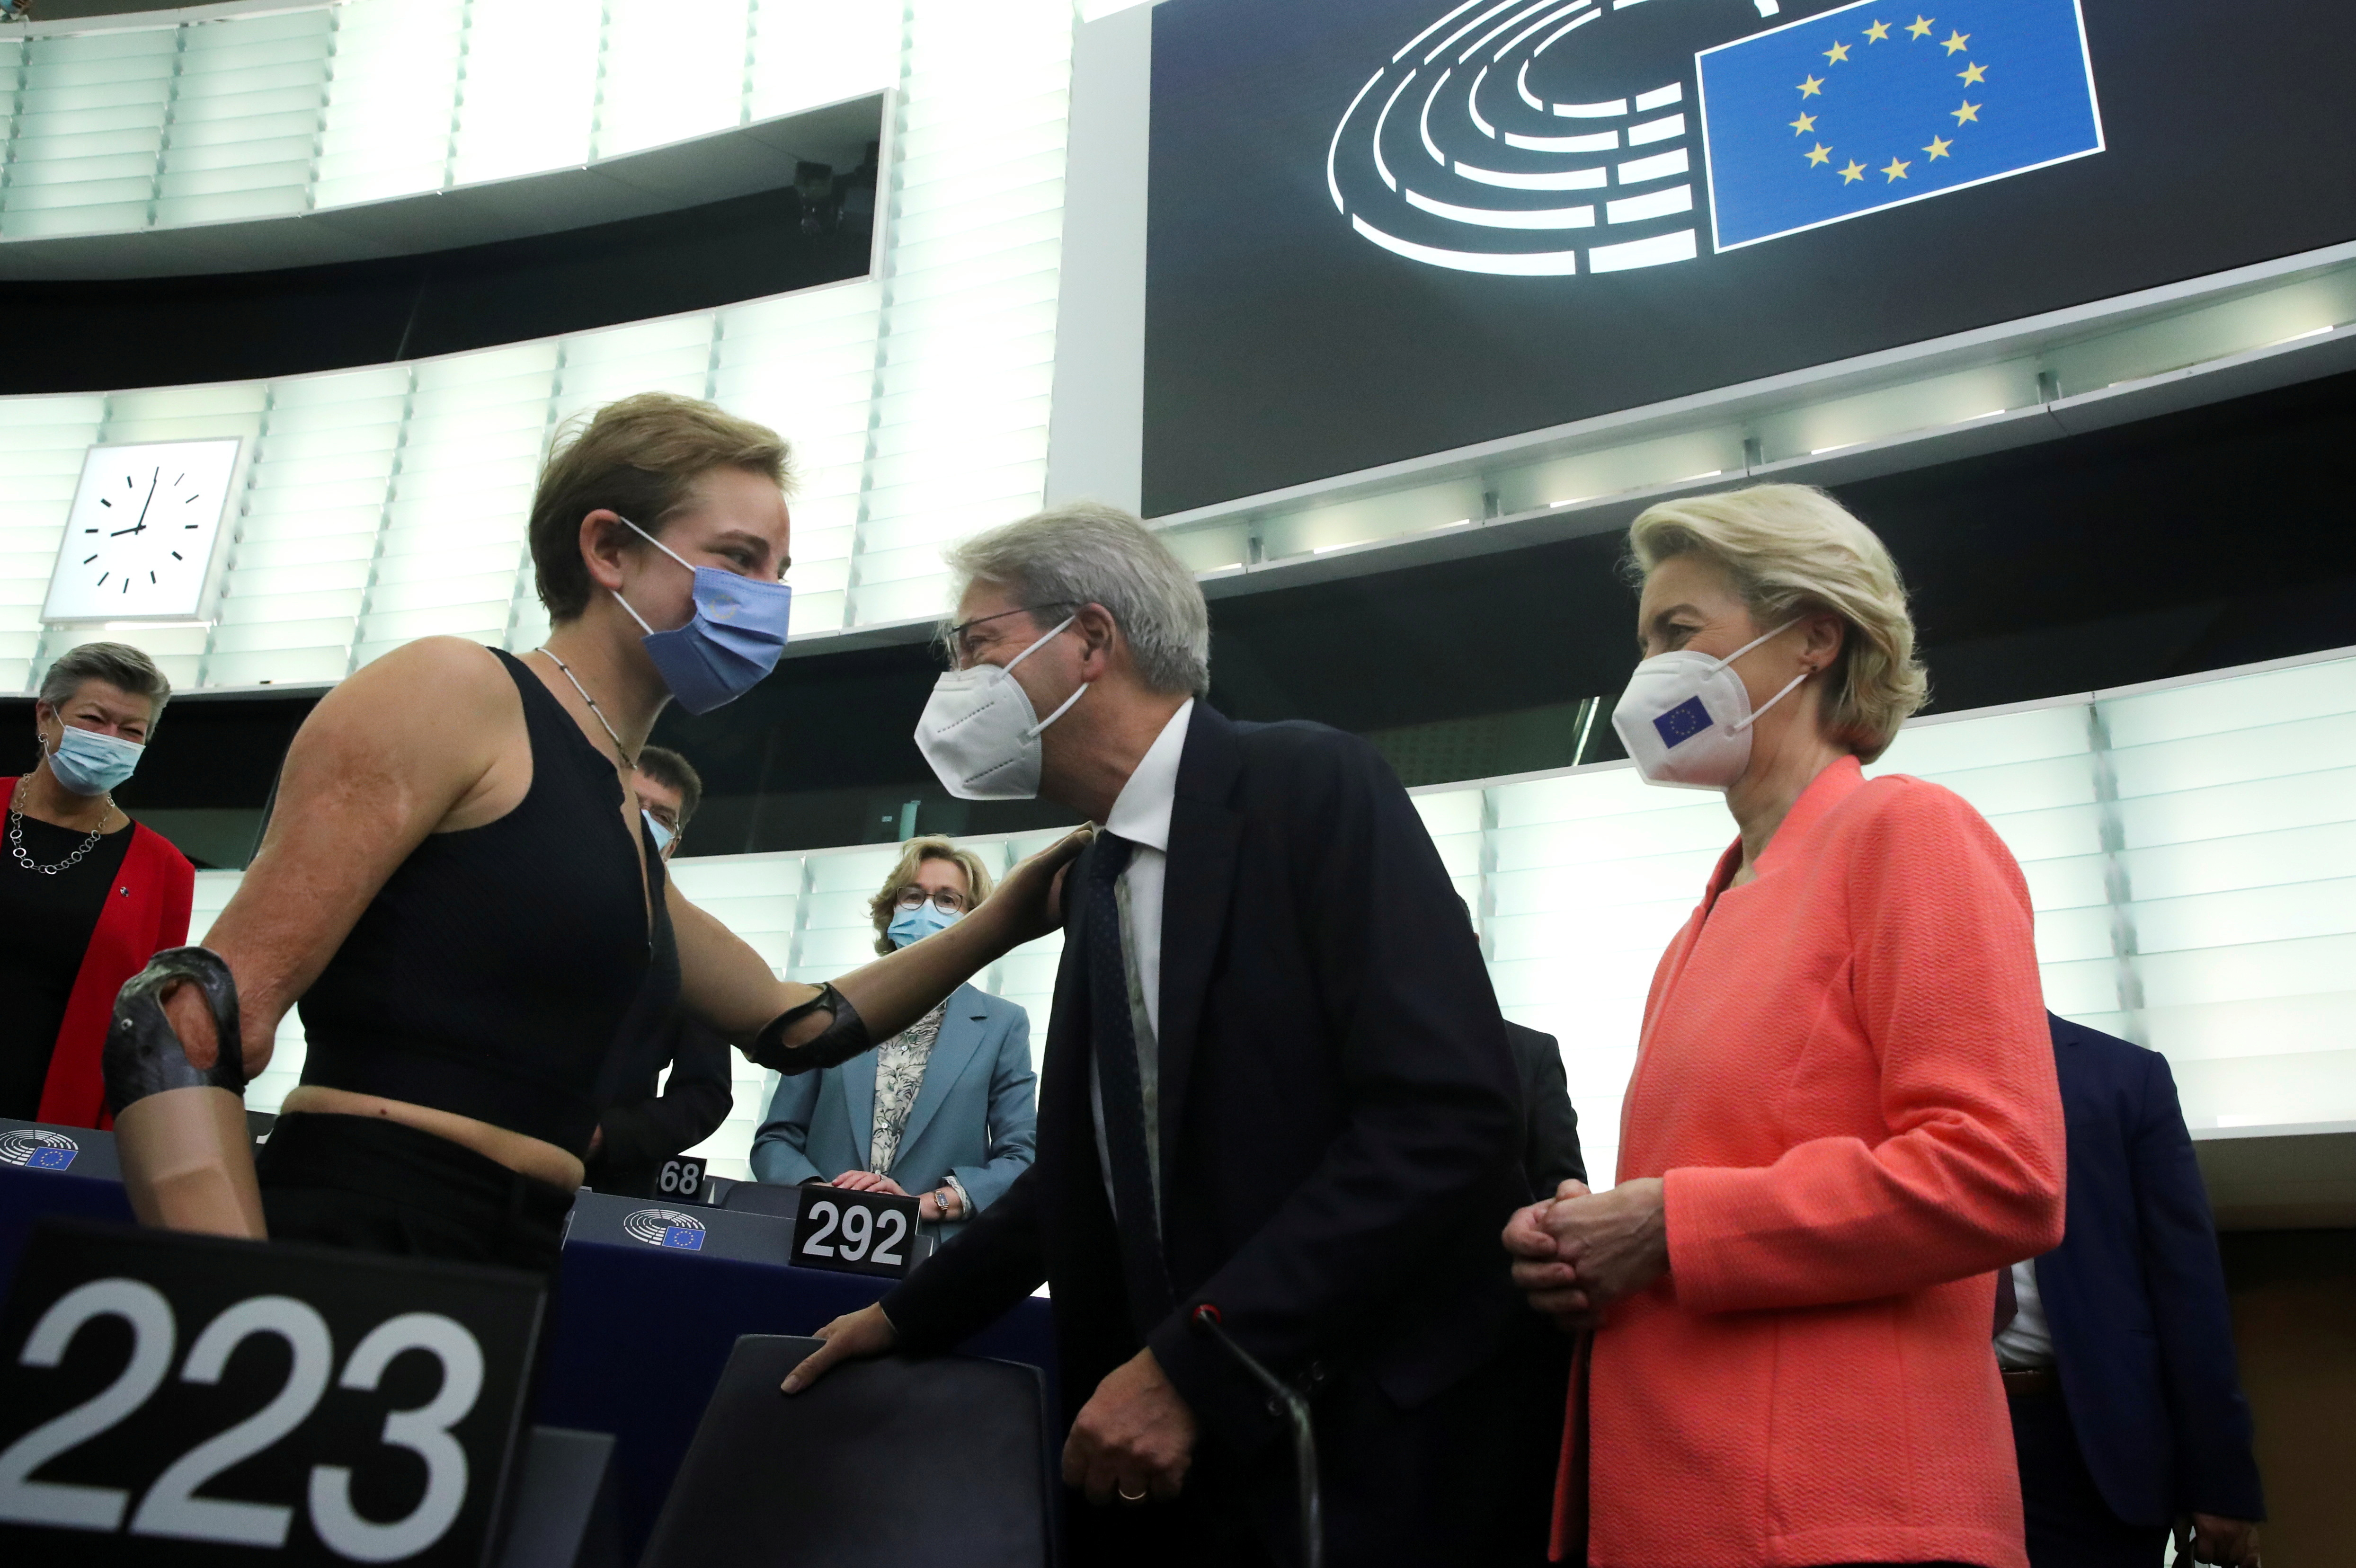 European Commission President Ursula von der Leyen and European Economy Commissioner Paolo Gentiloni speak with Tokyo 2020 Paralympic gold medallist Beatrice Vio at the European Parliament in Strasbourg, France, September 15, 2021.  REUTERS/Yves Herman/Pool